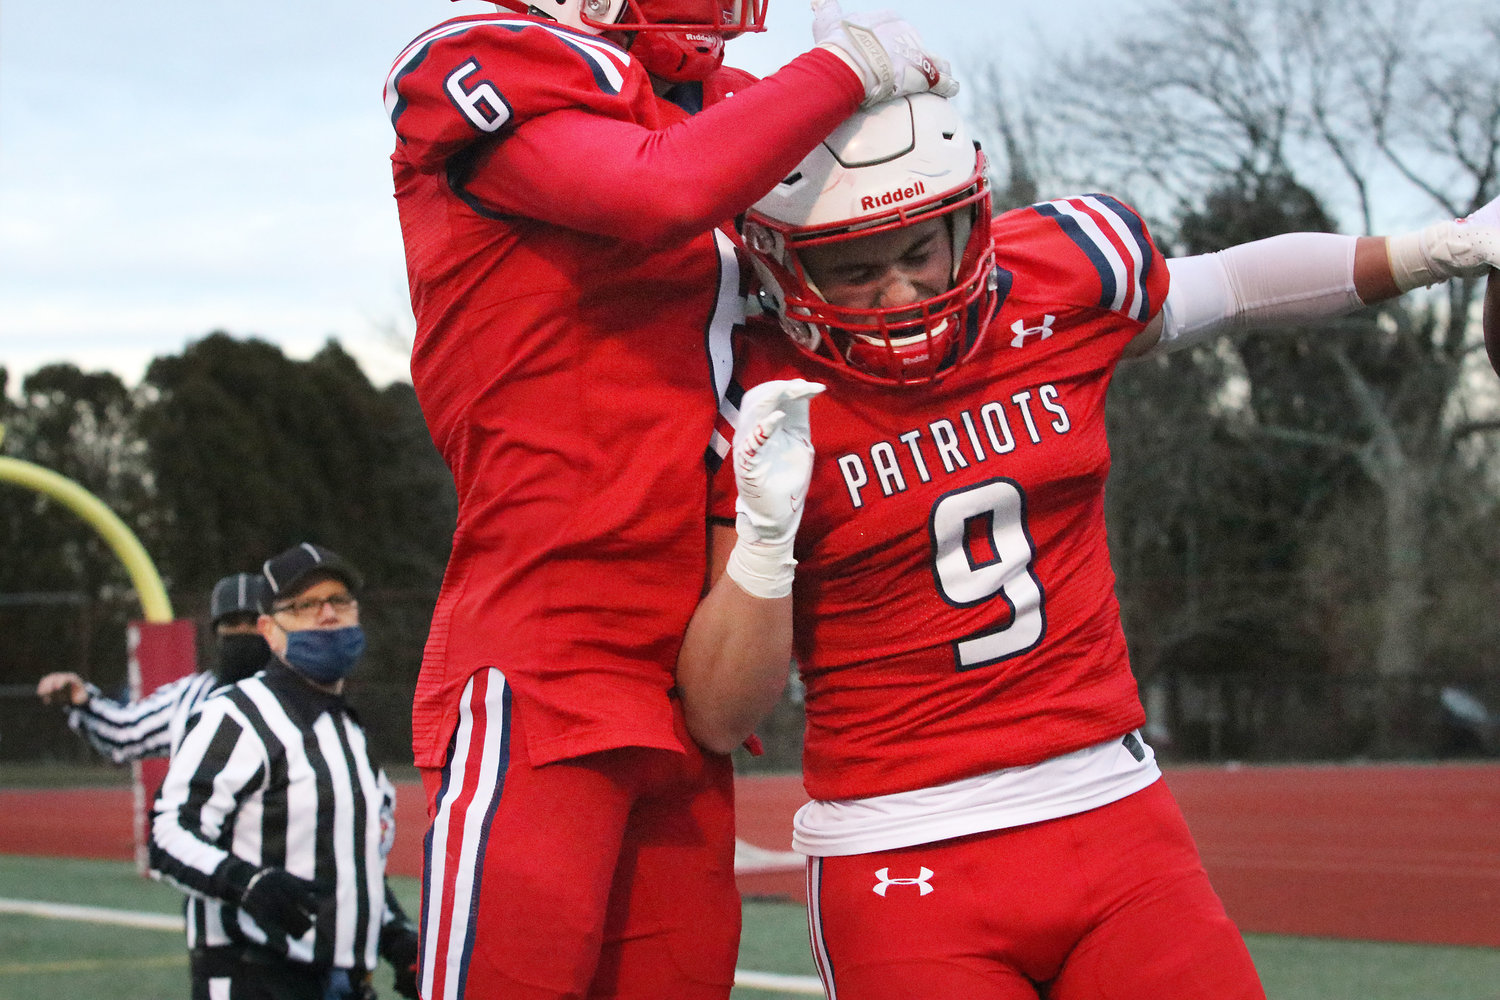 Marcus Evans (left) celebrates with Chris Bulk after the latter's TD catch in the second period.